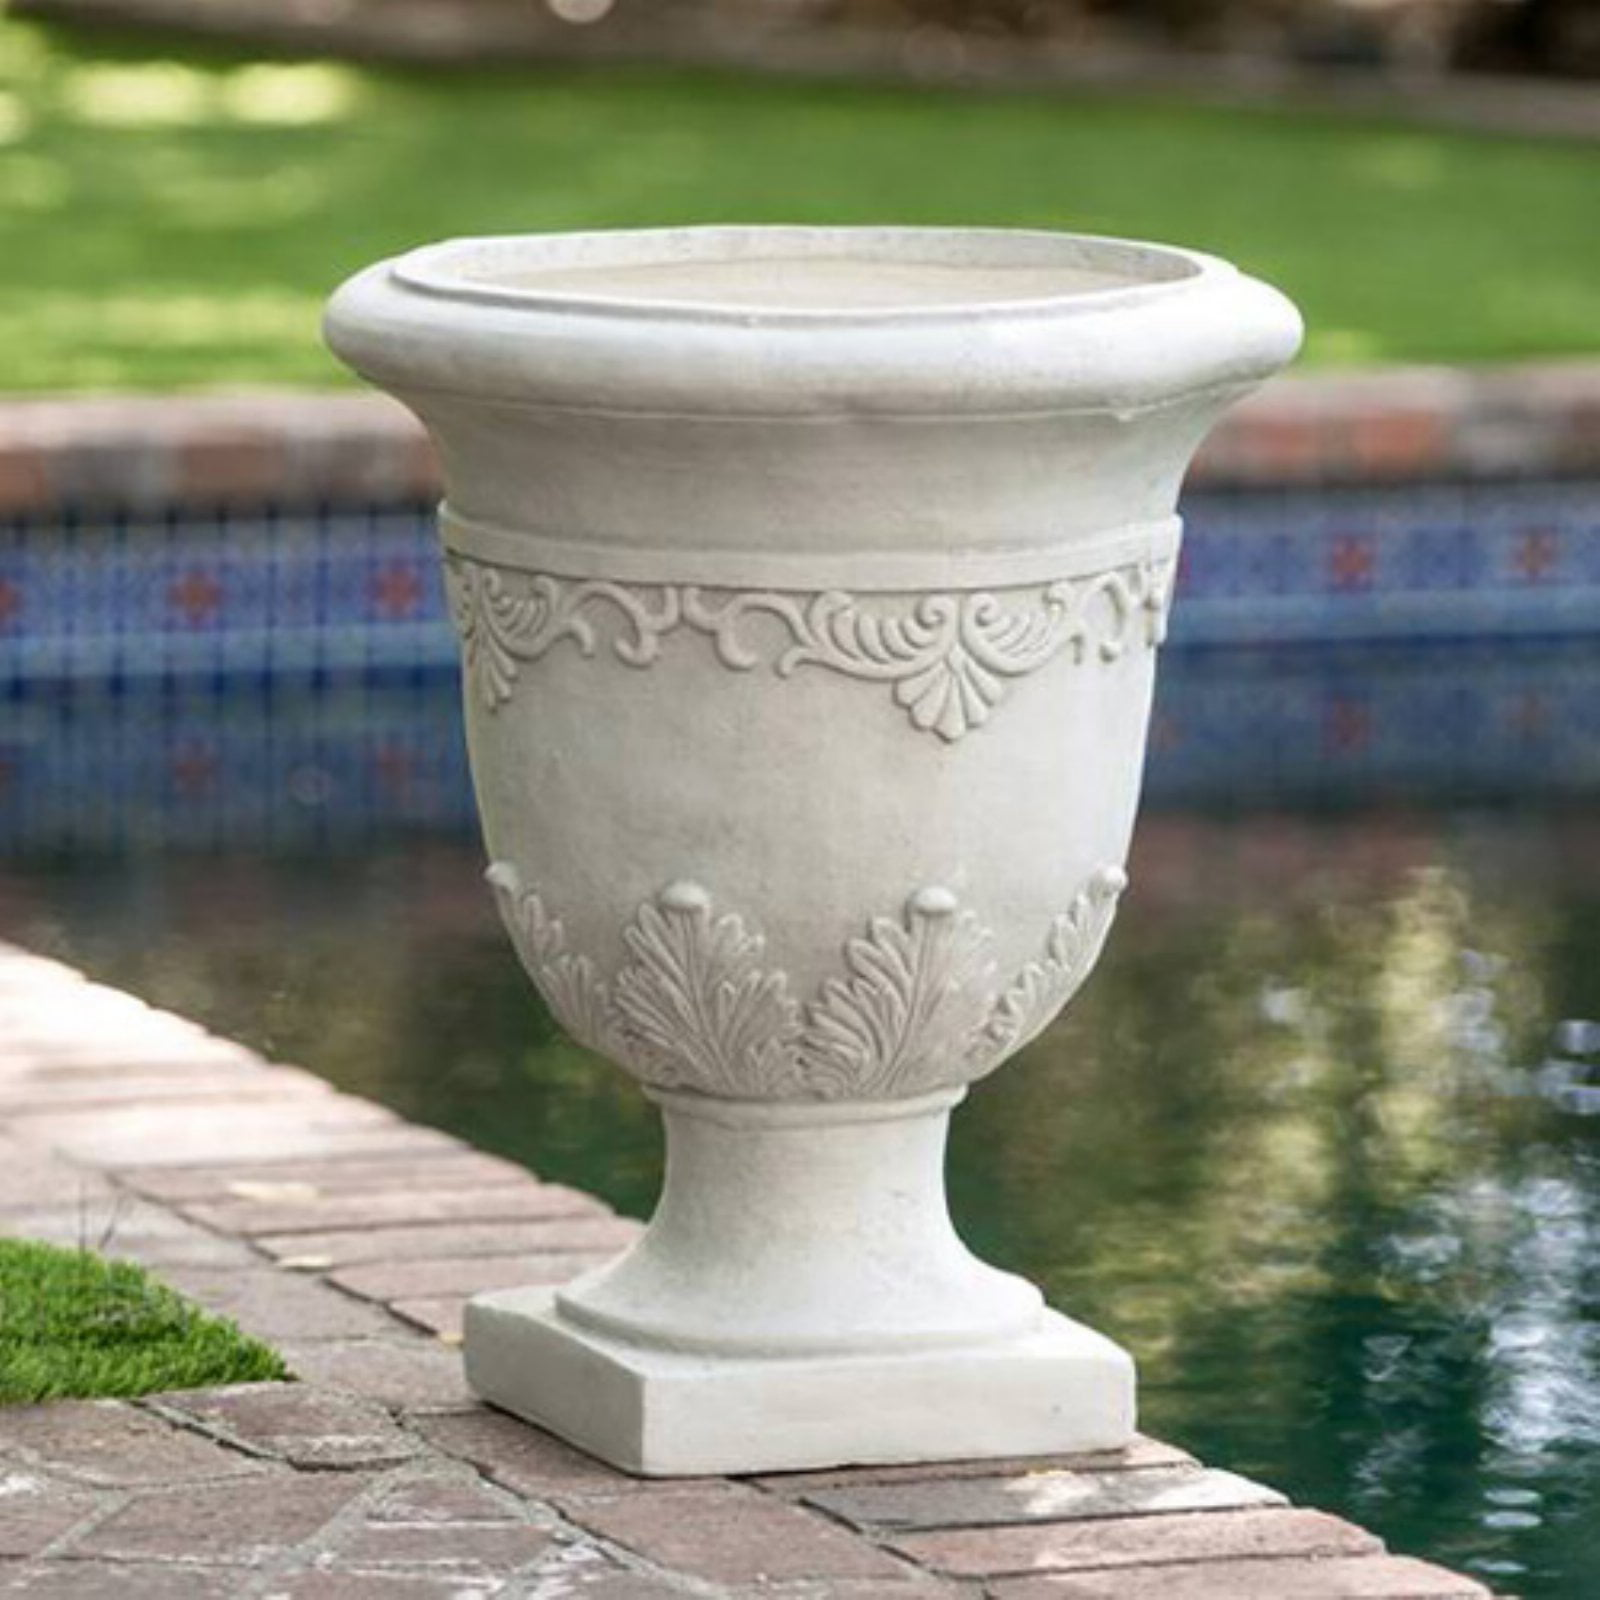 Best Selling Home Antique Gray Moroccan 20 in. Urn Planter by Best Selling Home Decor Furniture LLC